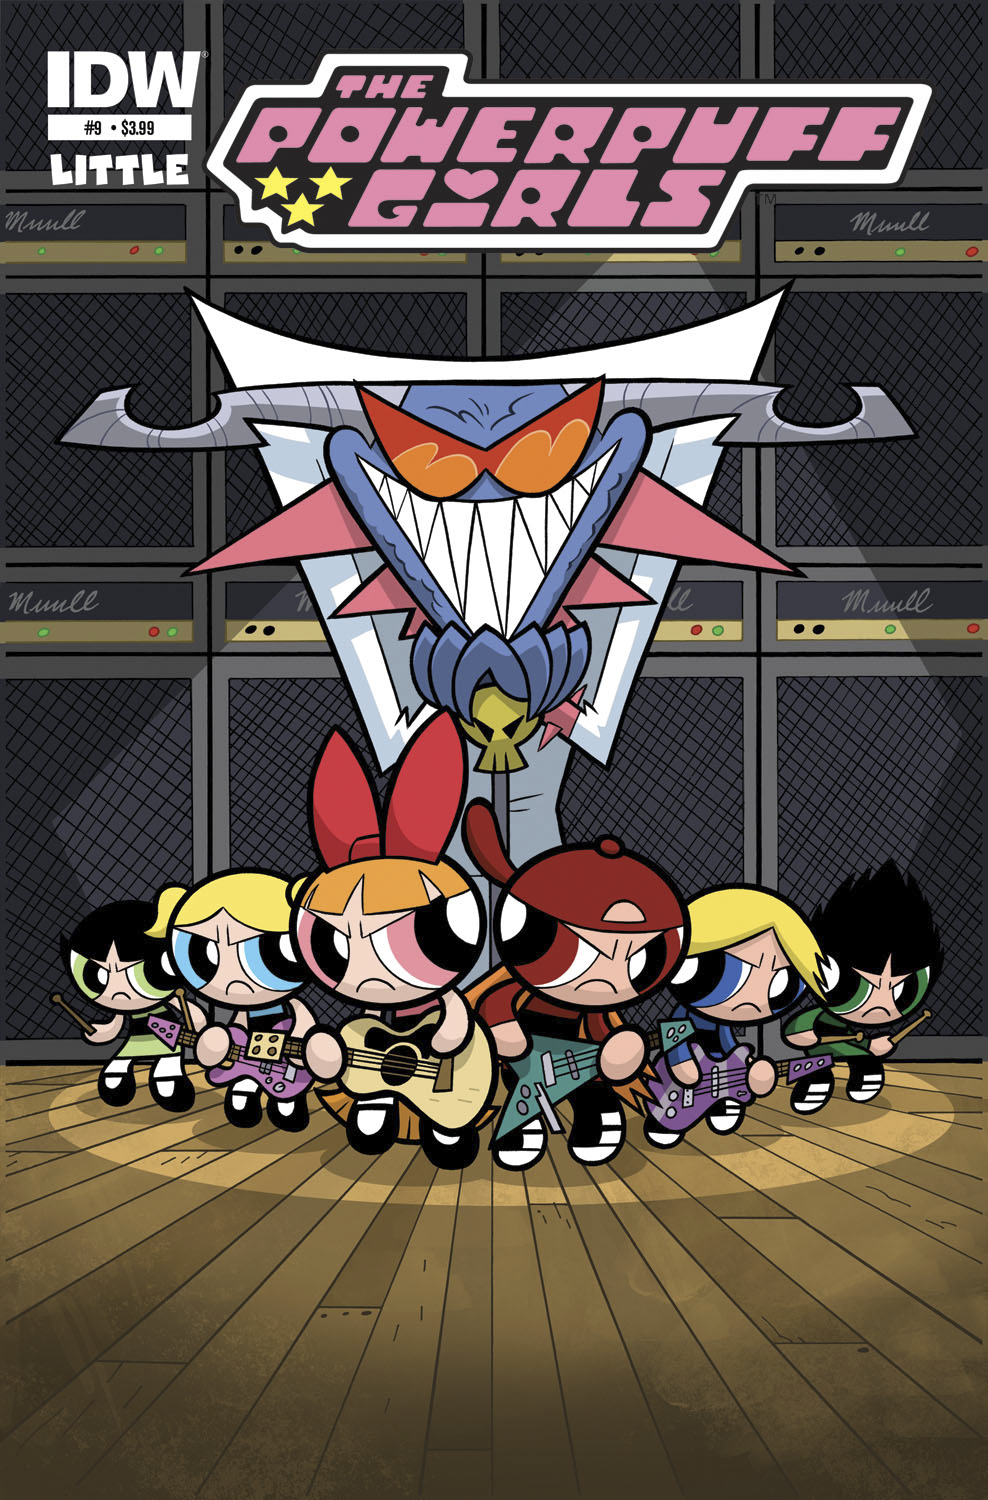 POWERPUFF GIRLS #9